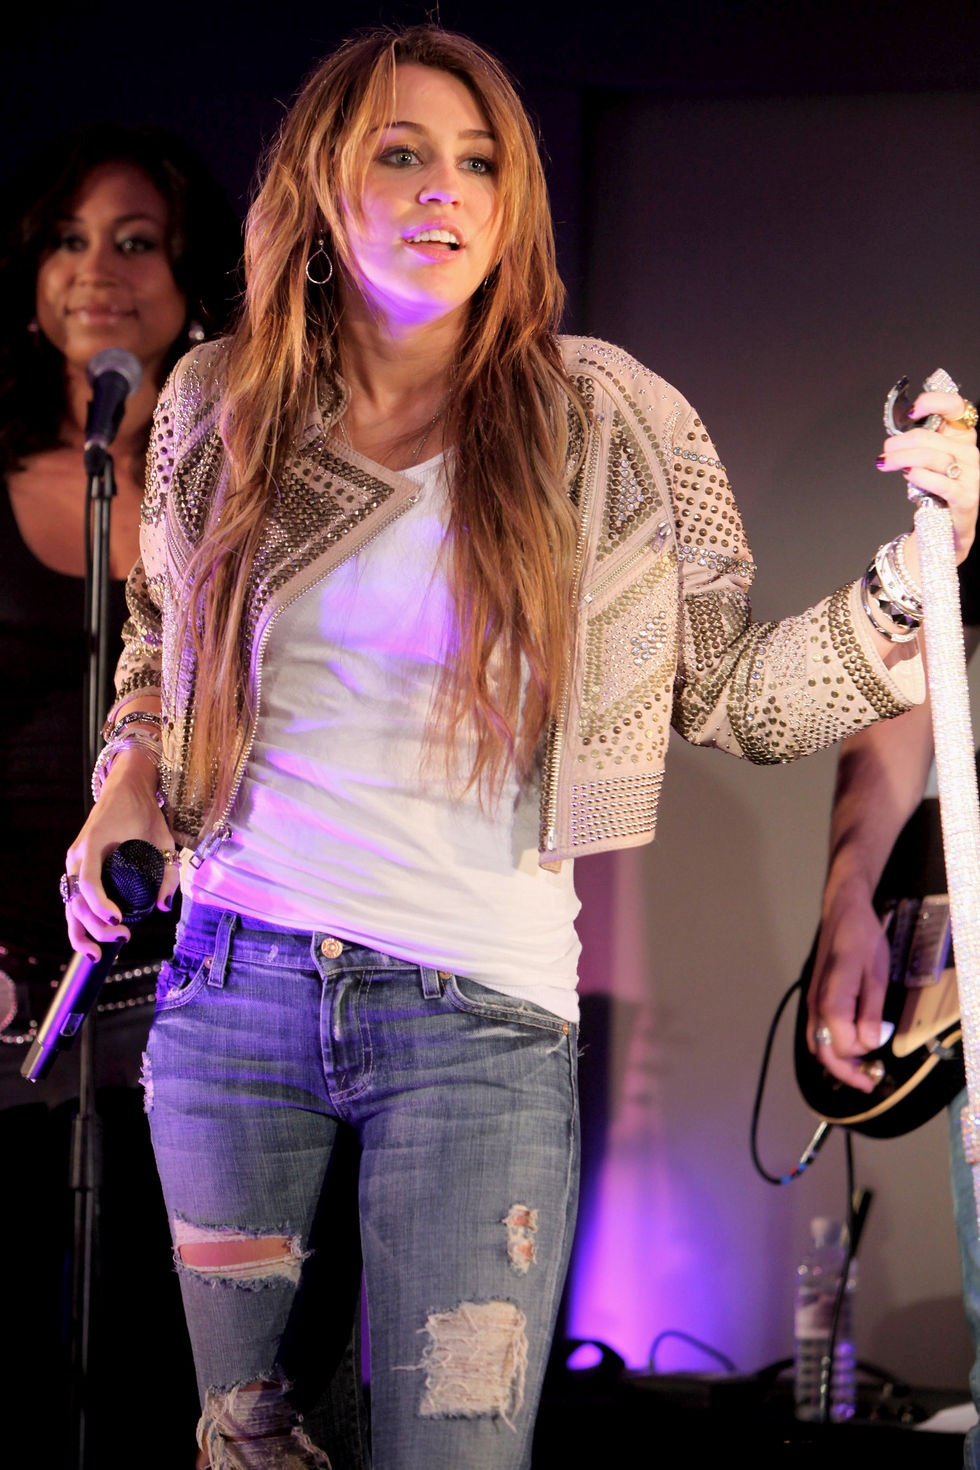 miley-cyrus-performs-live-at-itunes-in-london-01